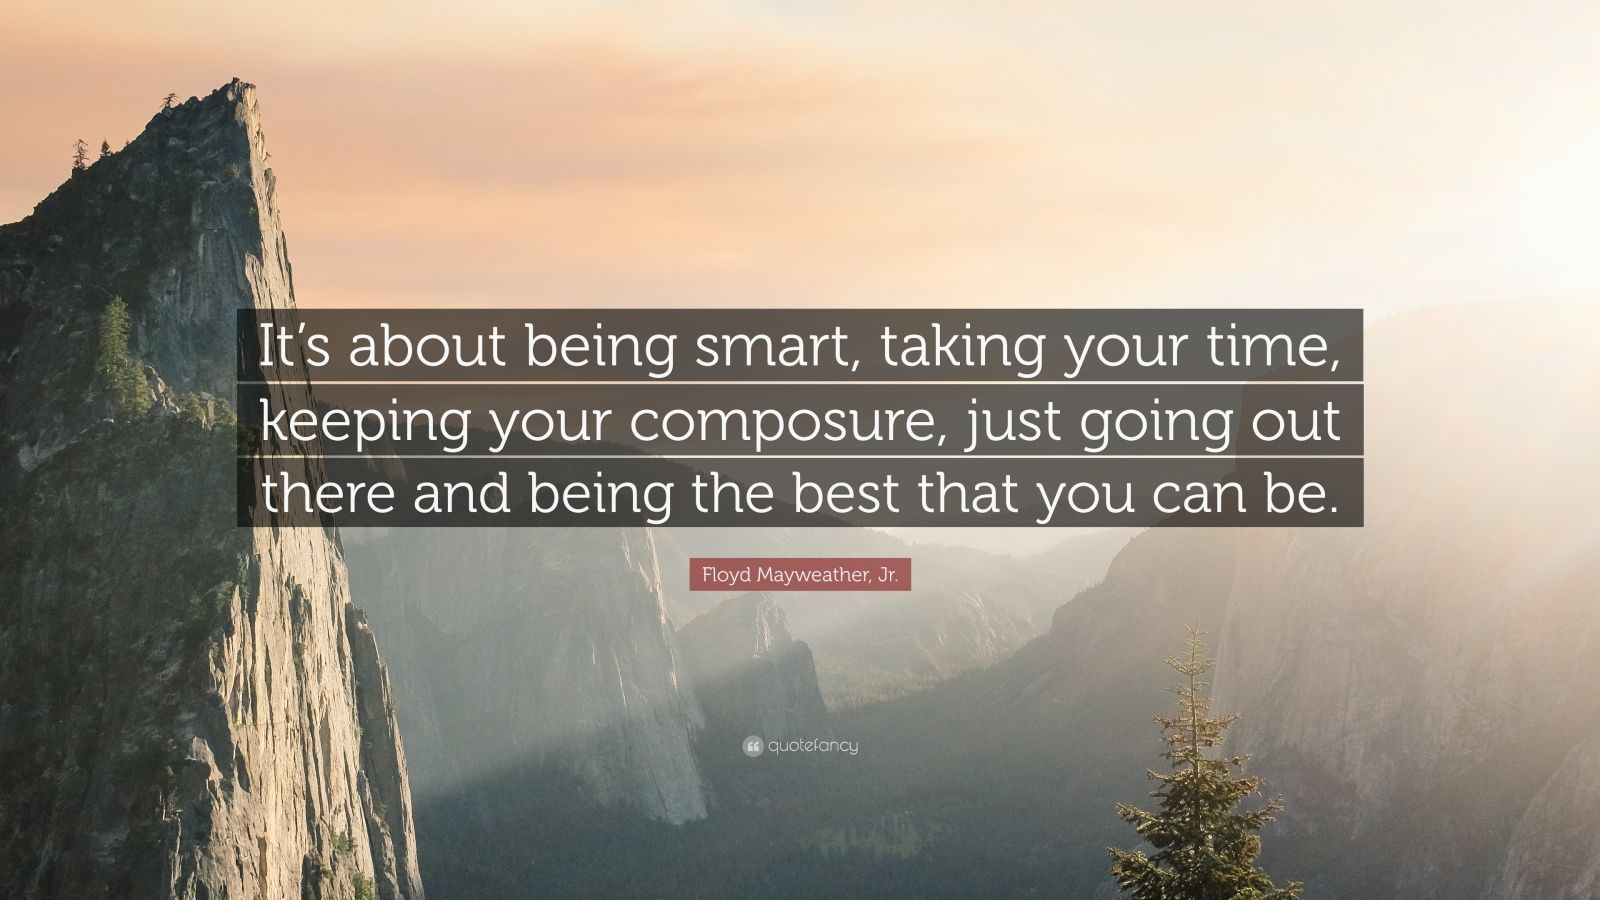 """Floyd Mayweather, Jr. Quote: """"It's about being smart, taking your time, keeping your composure, just going out there and being the best that you can be."""""""